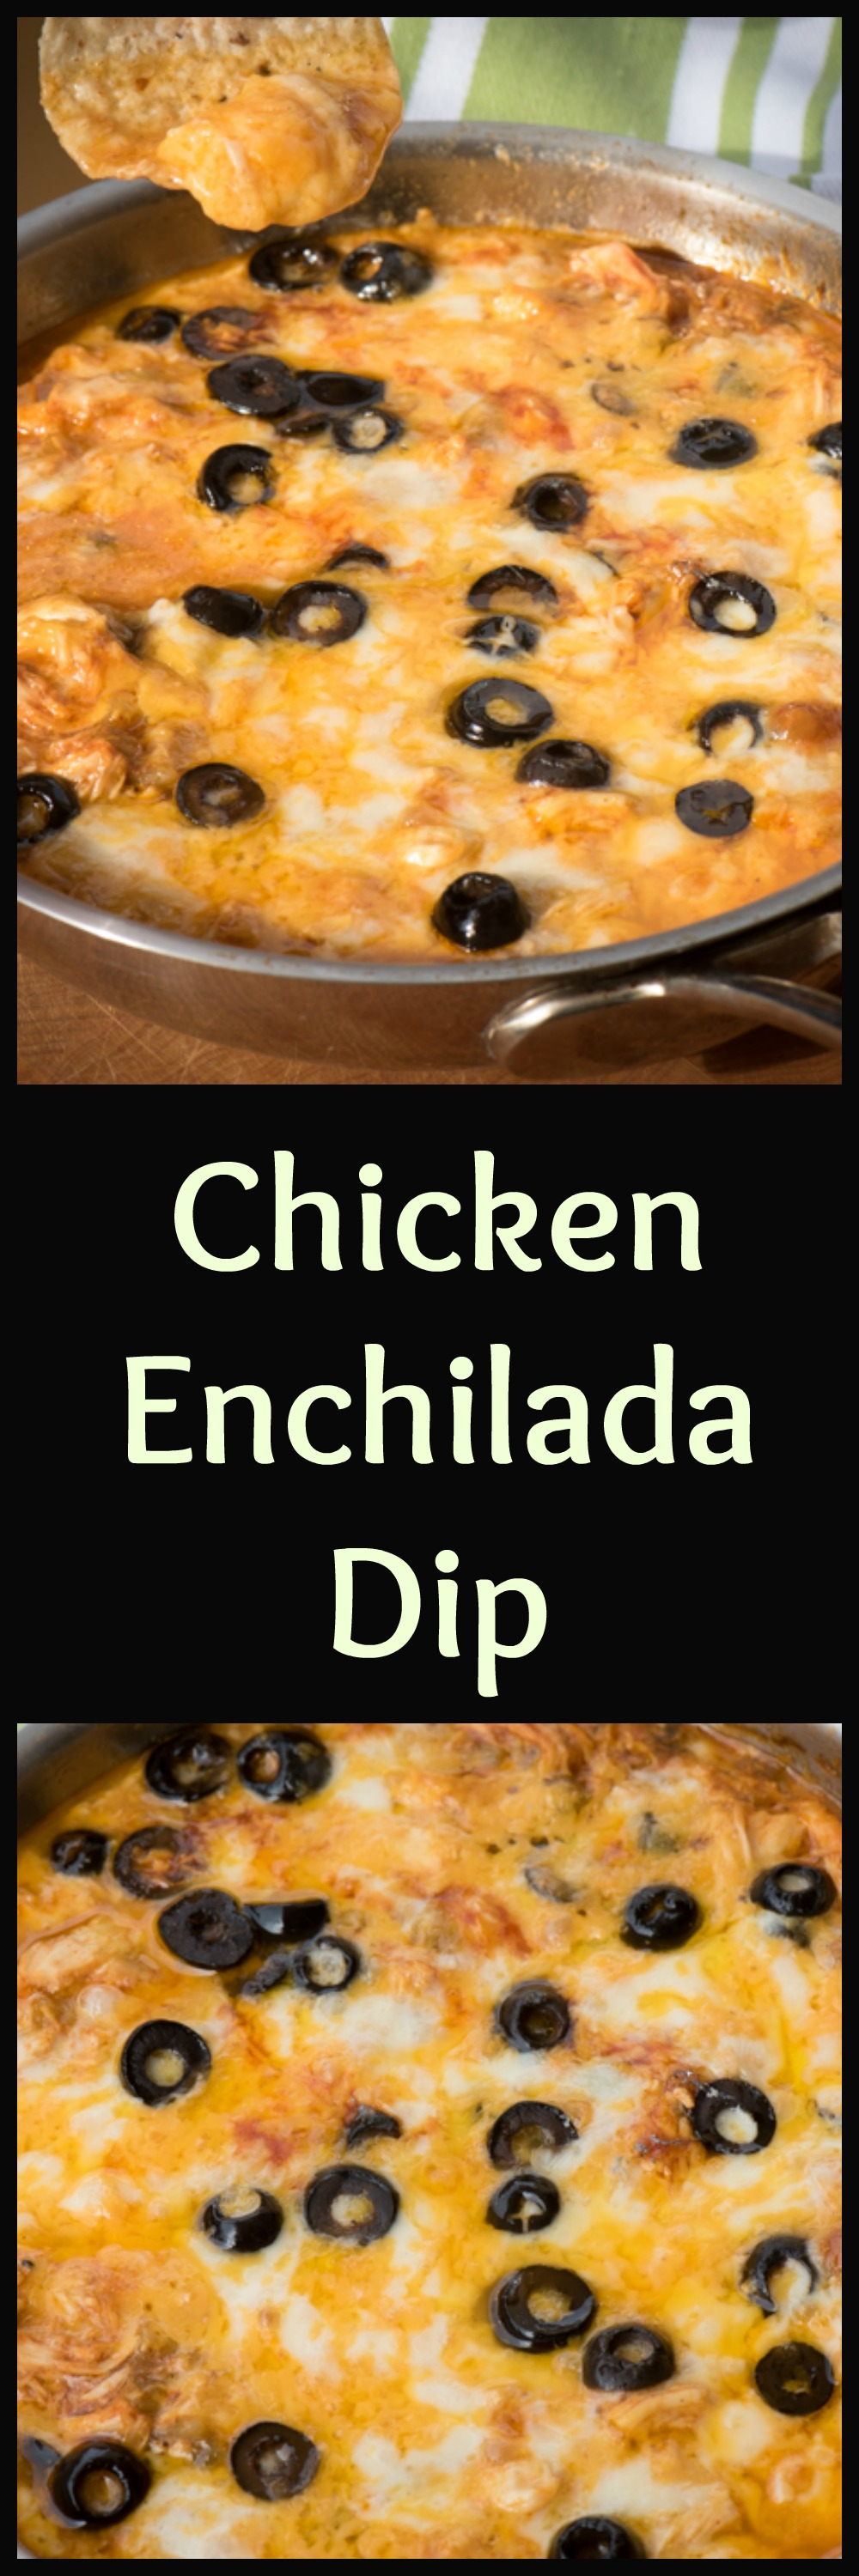 Make chicken enchilada dip ahead of time and pop in hot oven and heat ...